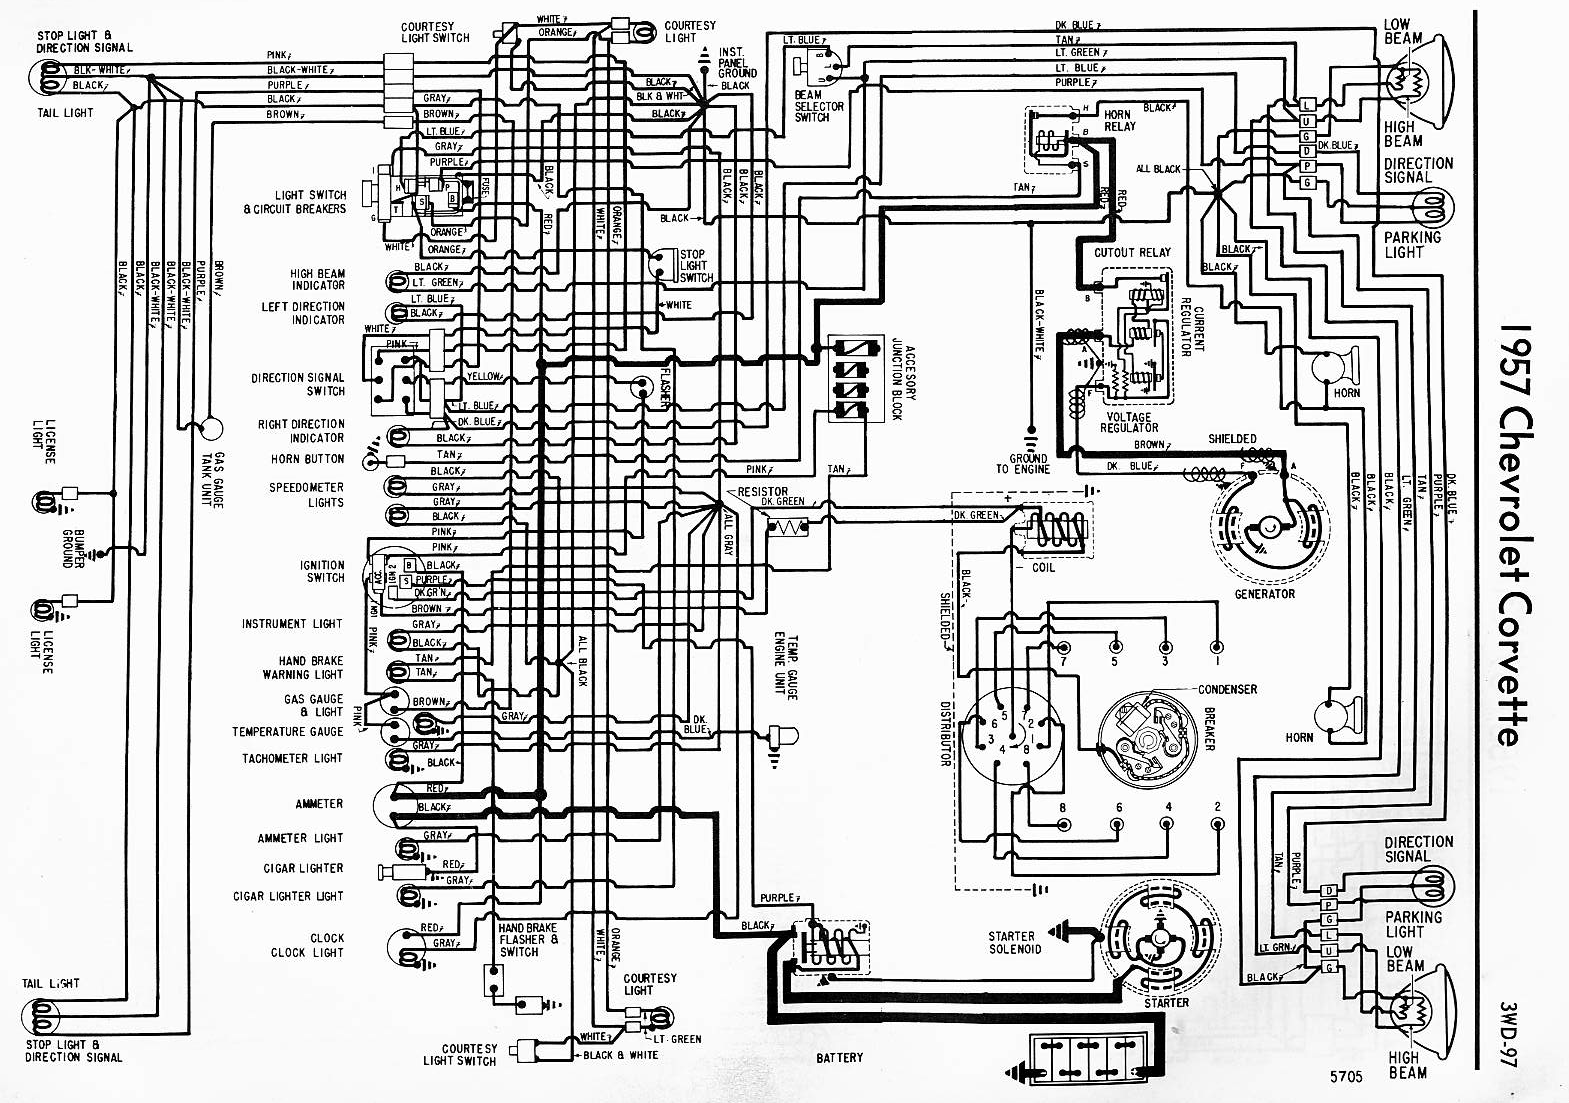 1957 corvette wiring diagram willcox corvette, inc c5 corvette wiring diagram 1957 corvette wiring diagram 57 corvettte tracer schematic best one